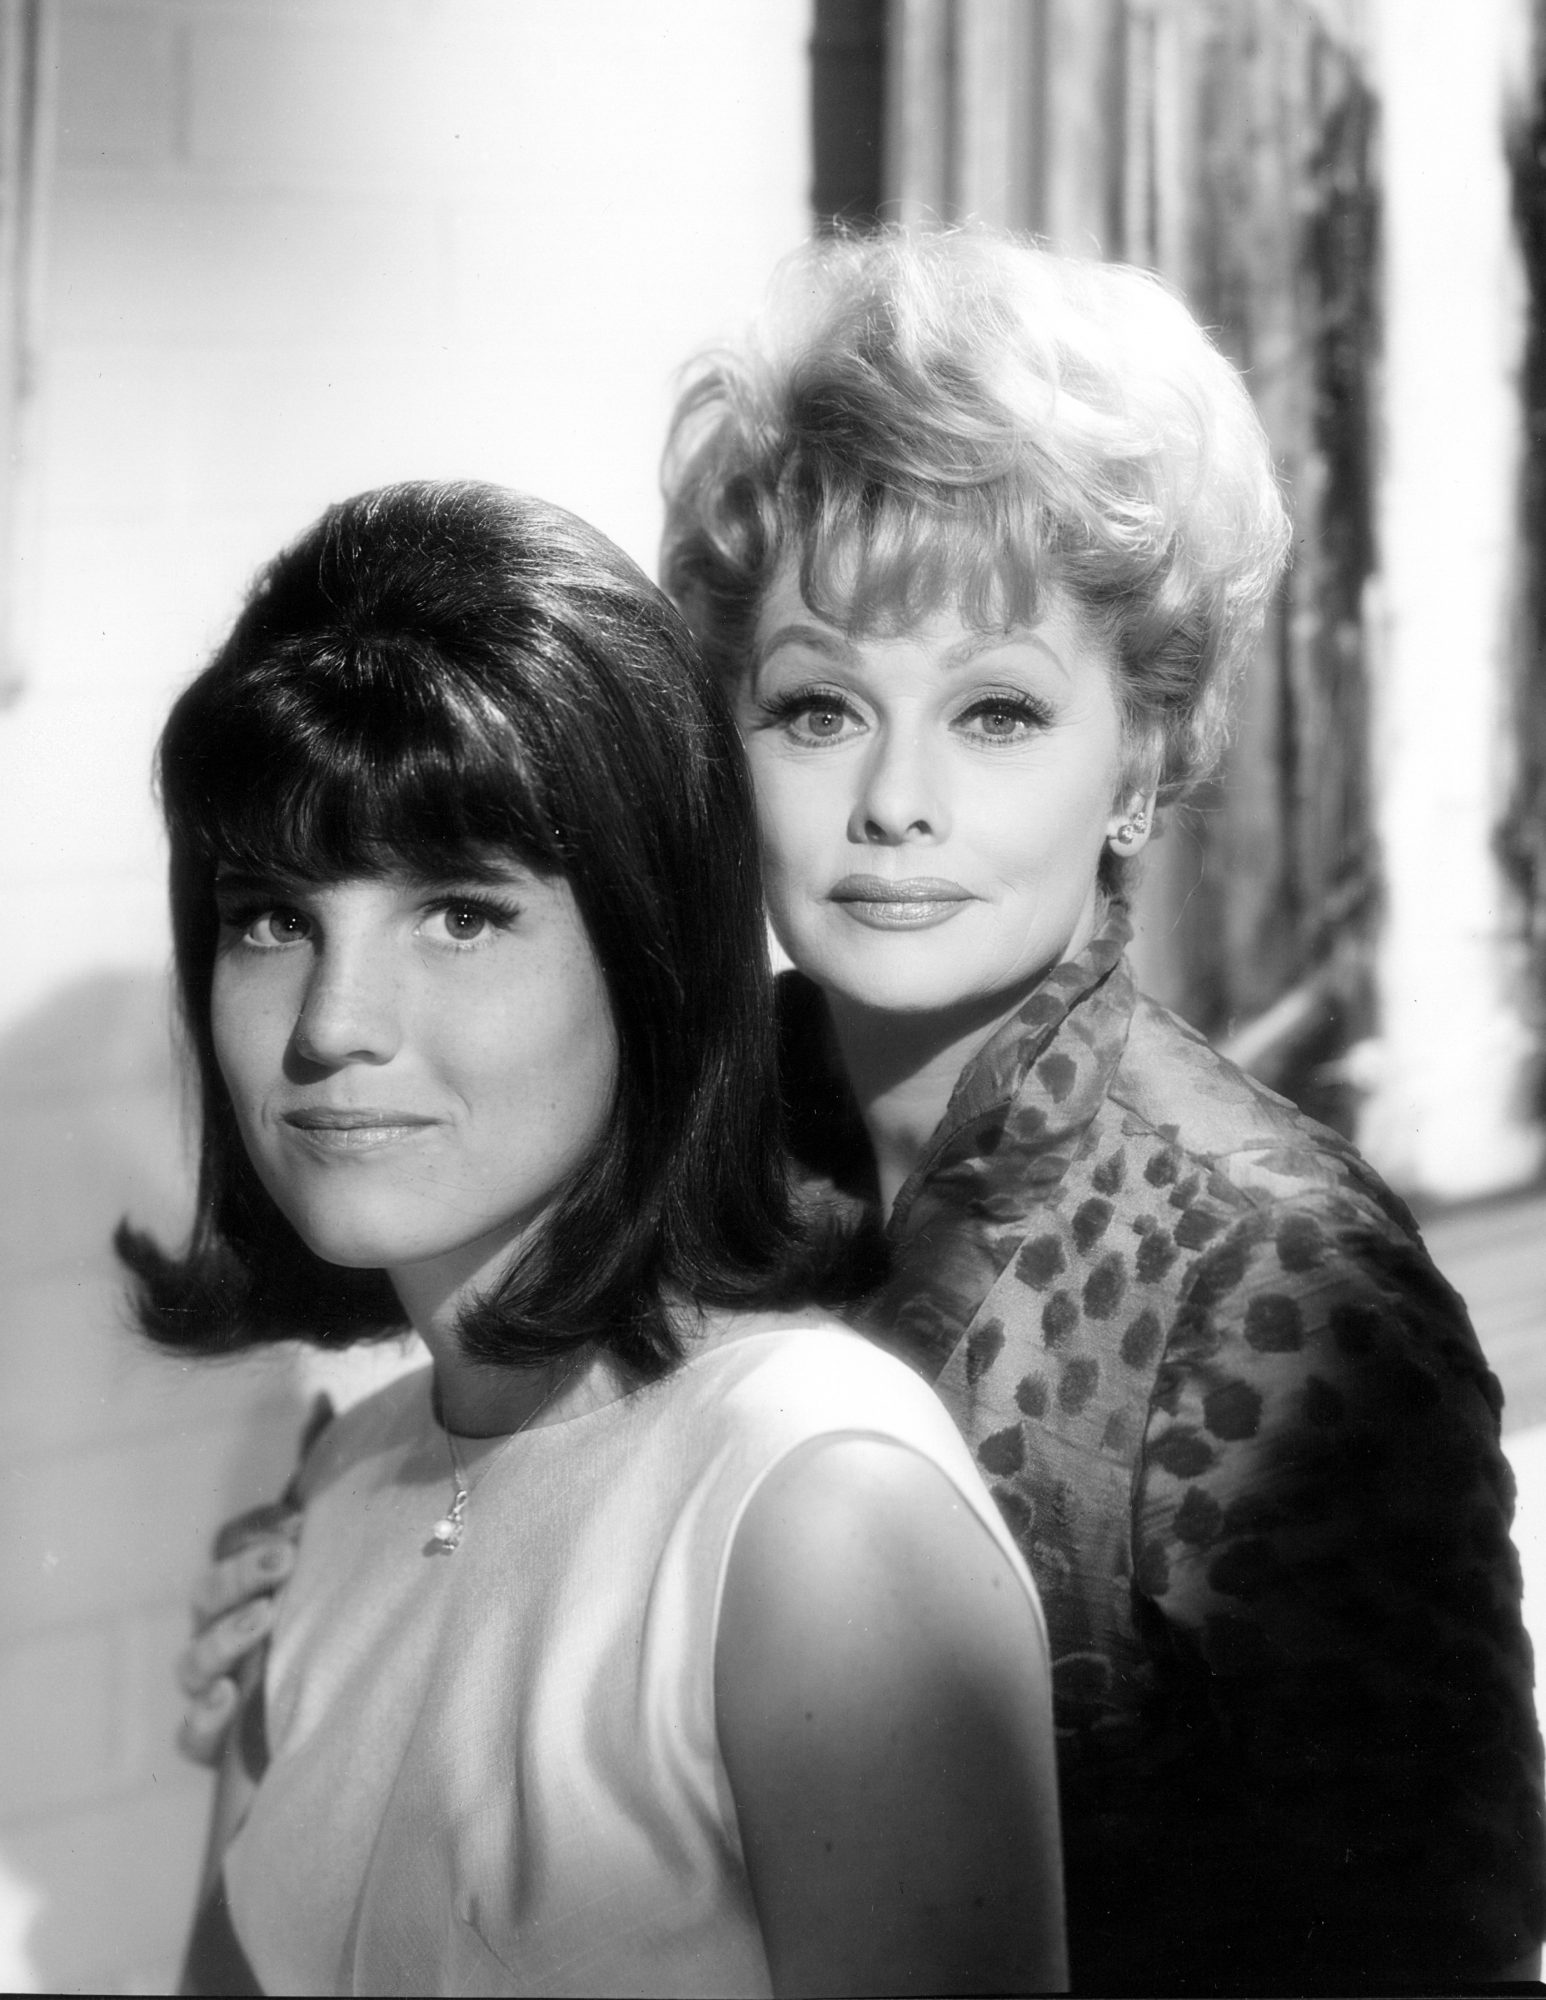 Lucille Ball and Daughter Lucie Arnaz